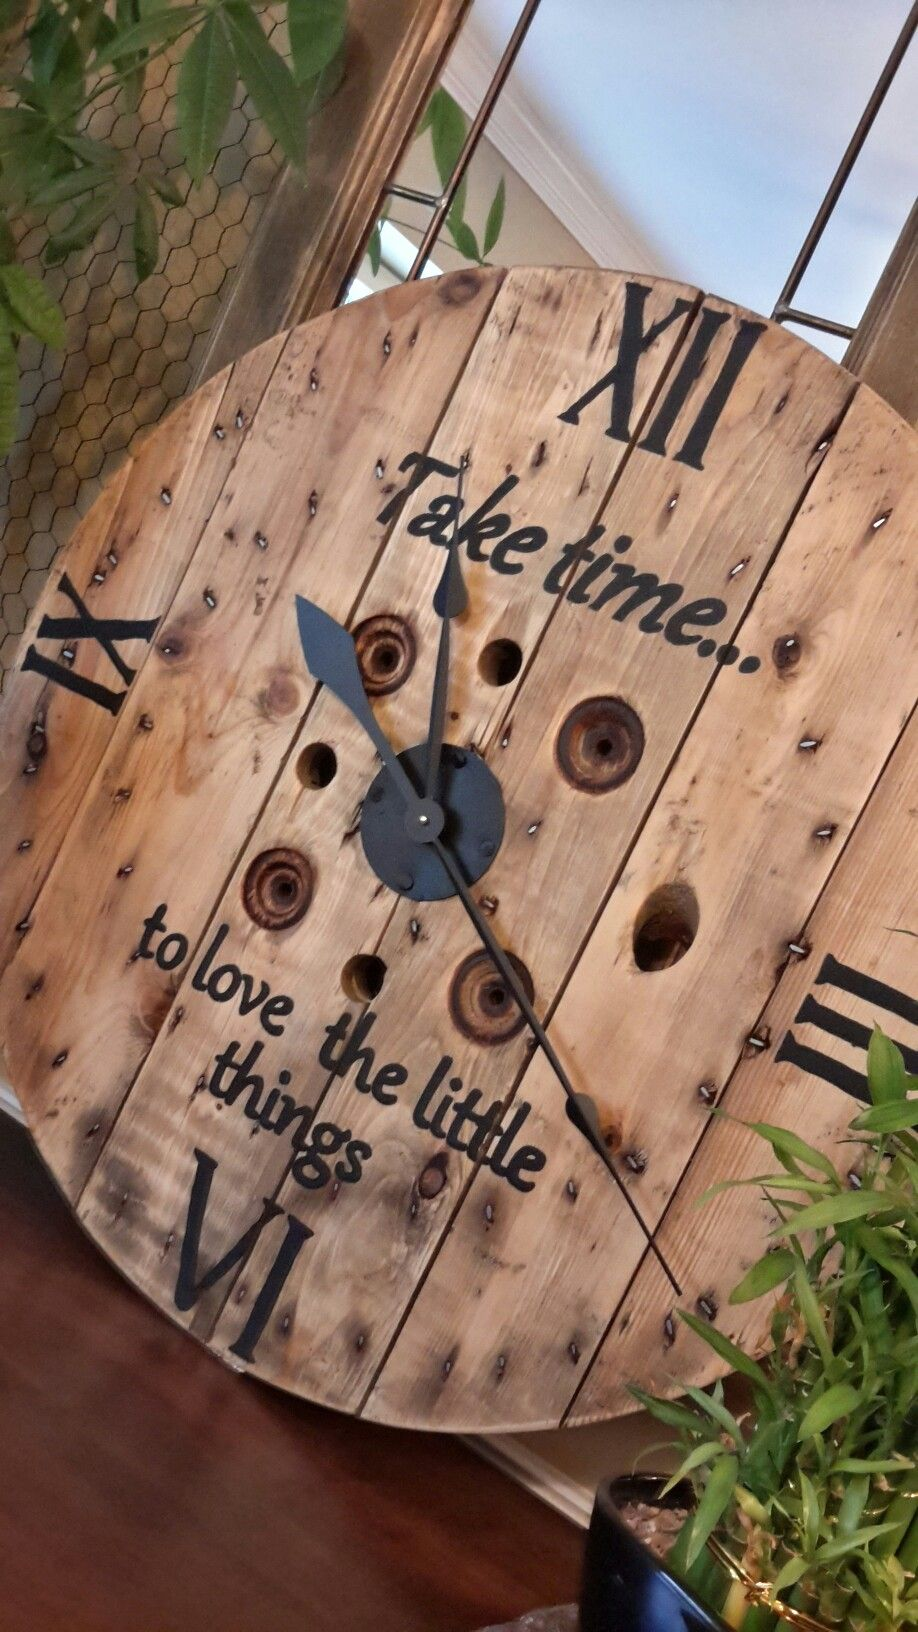 30 Wood Spool Clock Country Signs Wooden Spools Wire Spool